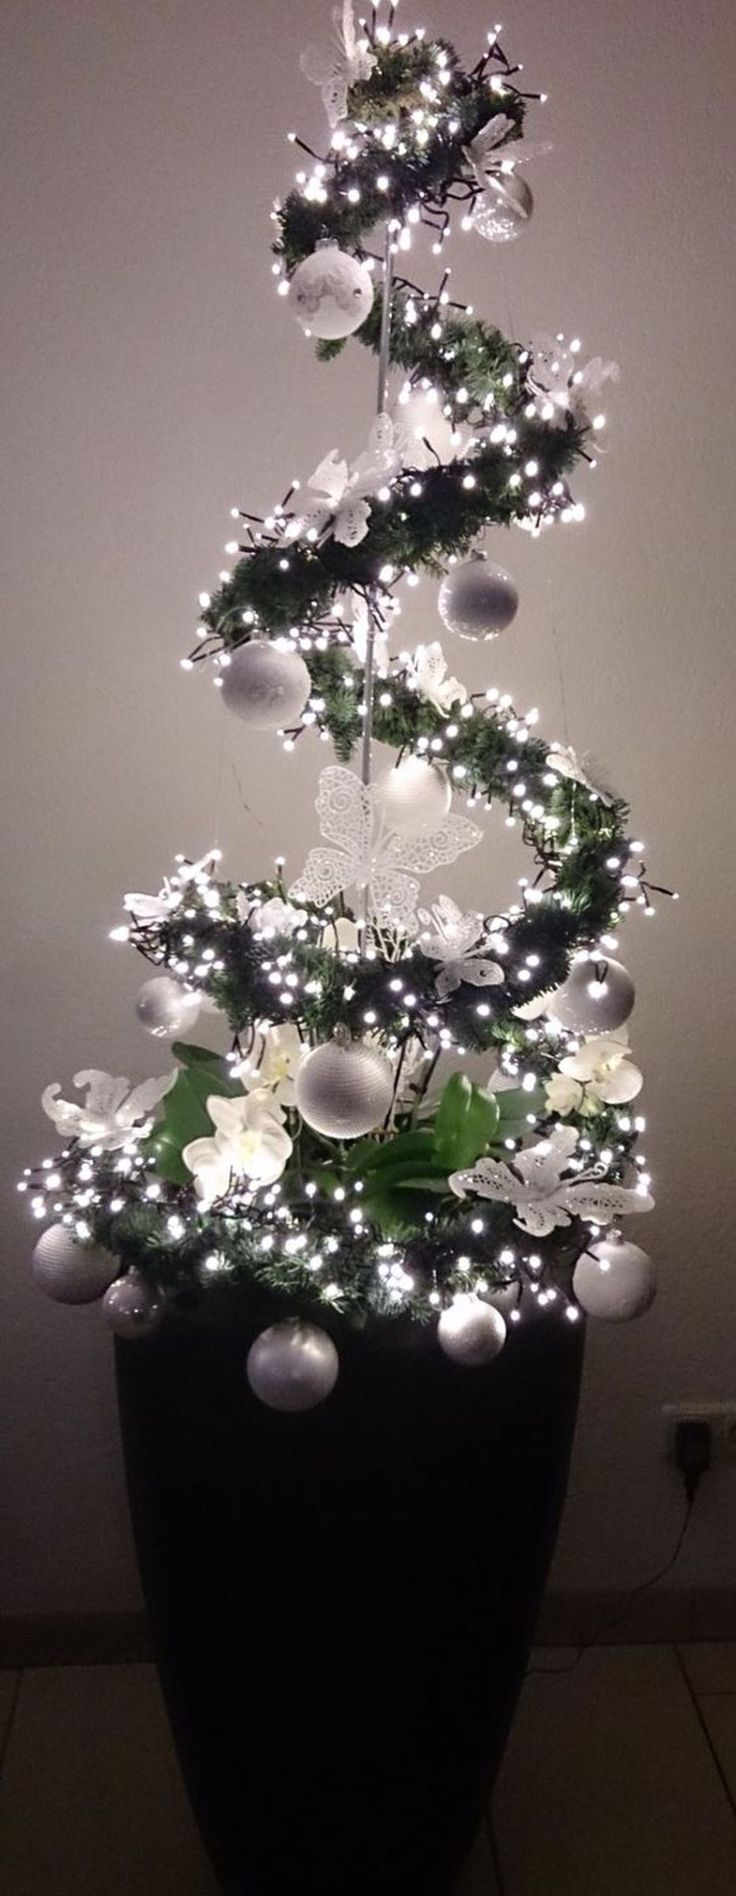 Gorgeous Chirstmas Tree Decorations Ideas 2017 47